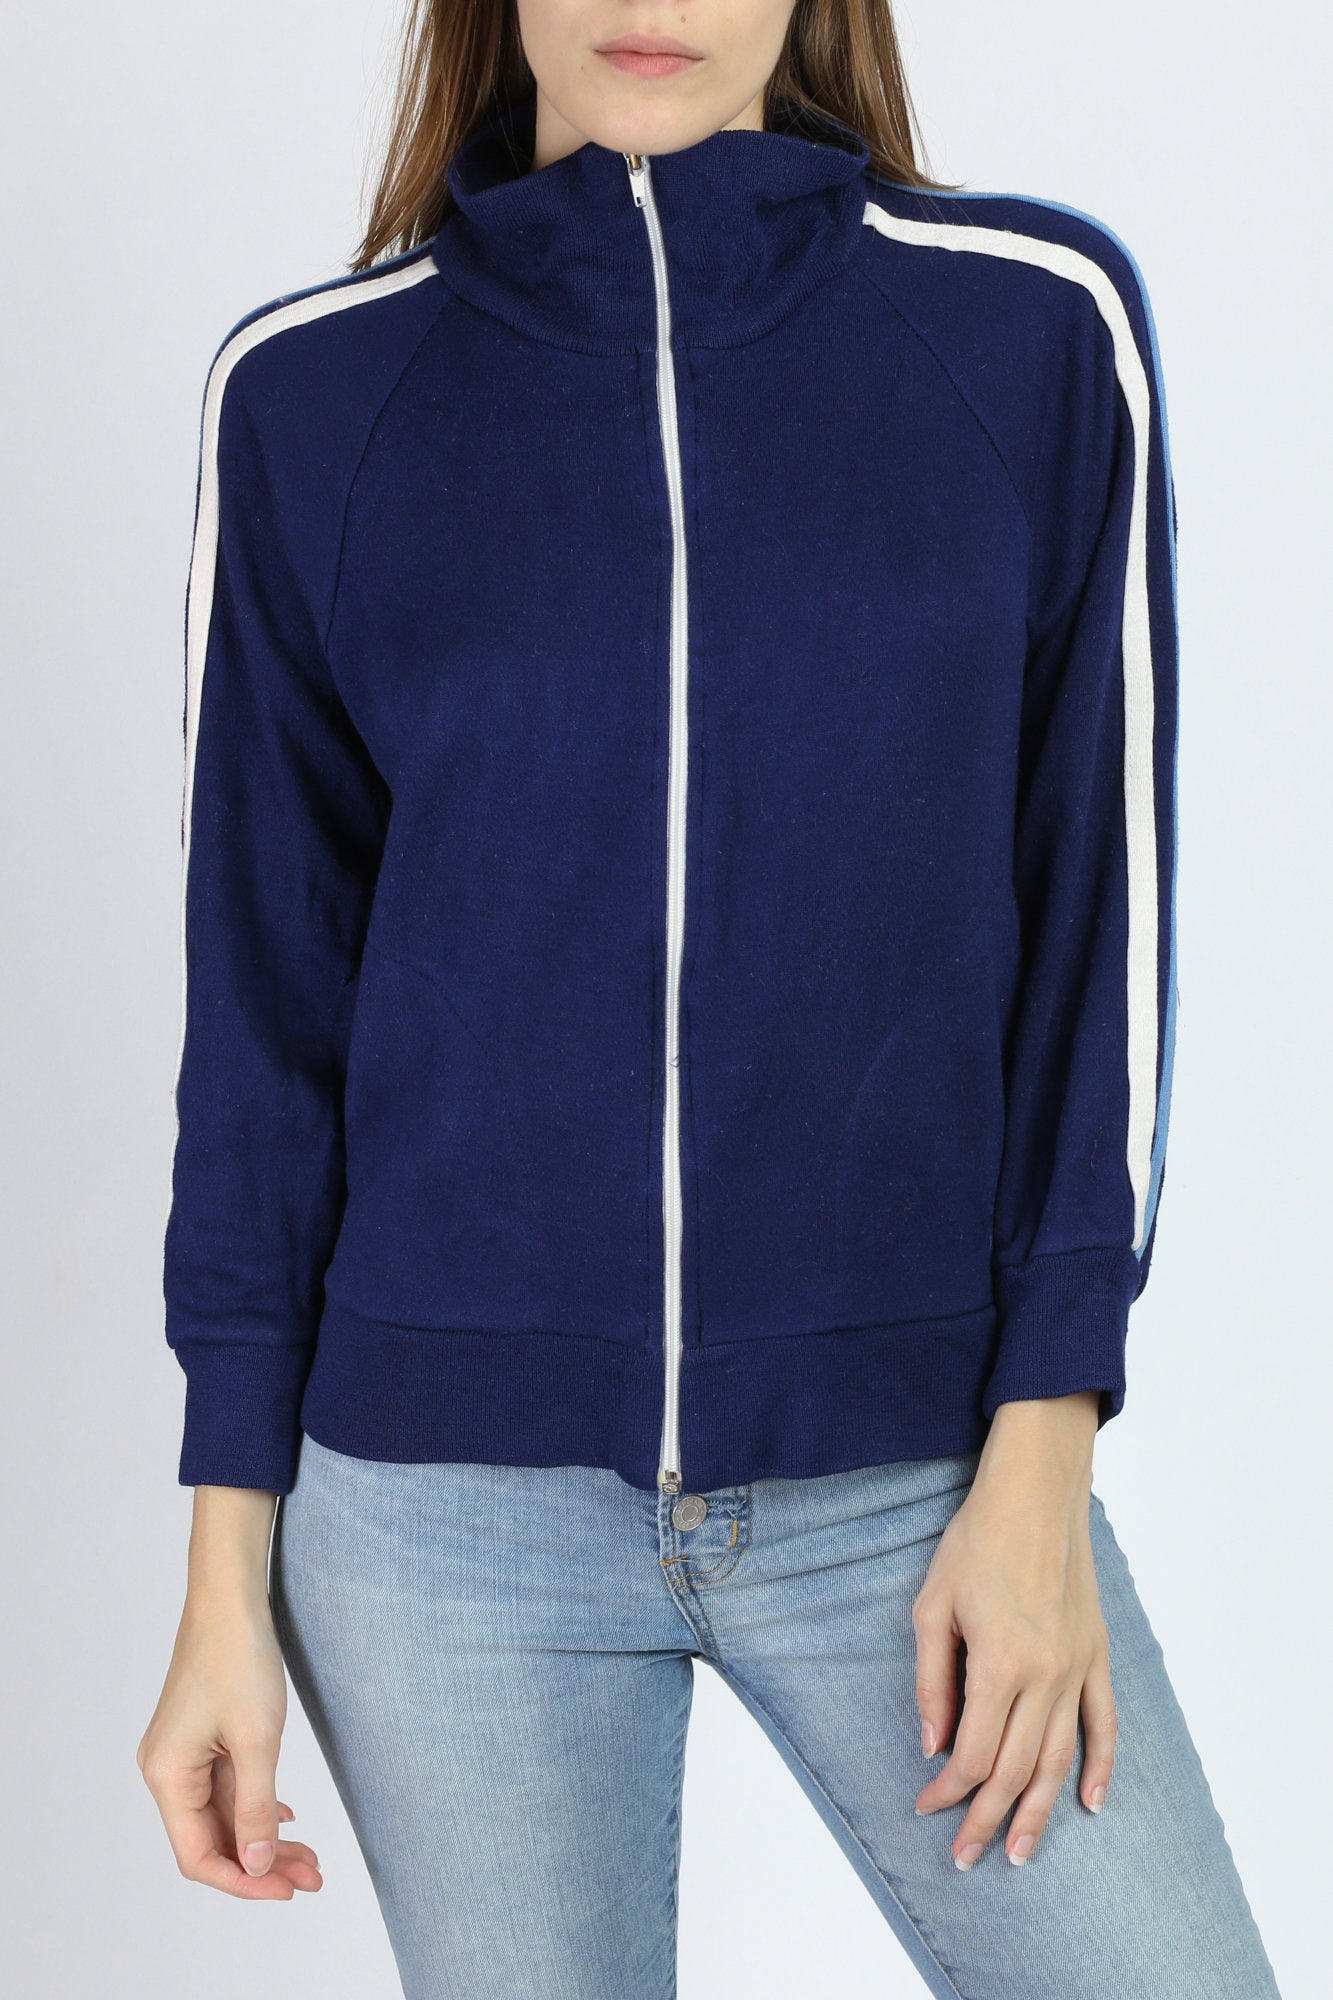 70s Navy Blue Zip Up Sweatshirt - Small